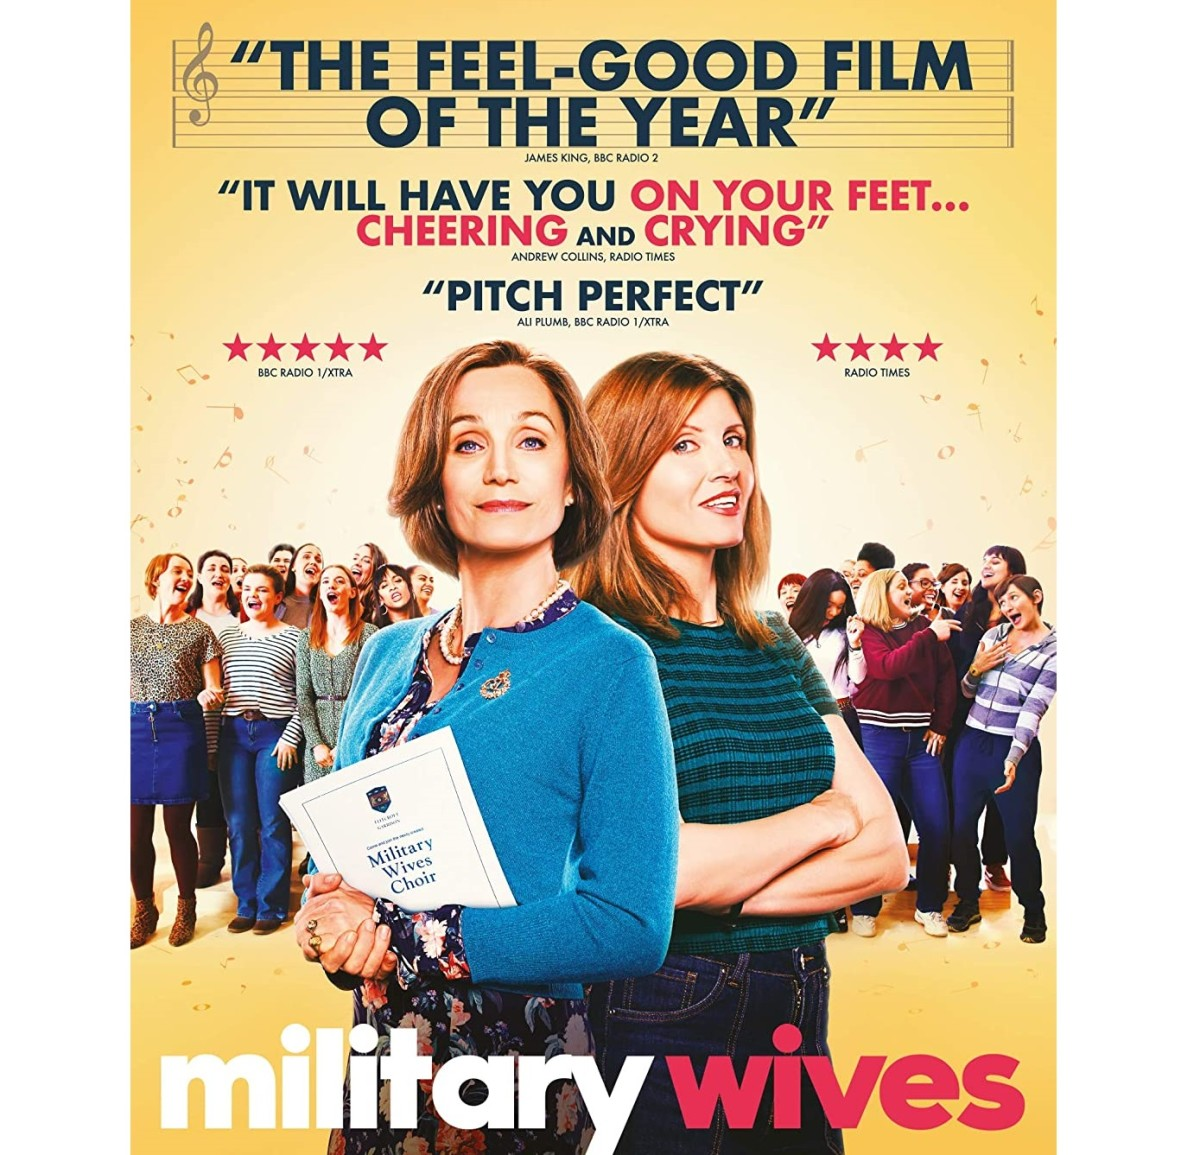 Premiered in March 2020, this feel-good movie has received 5-star reviews.